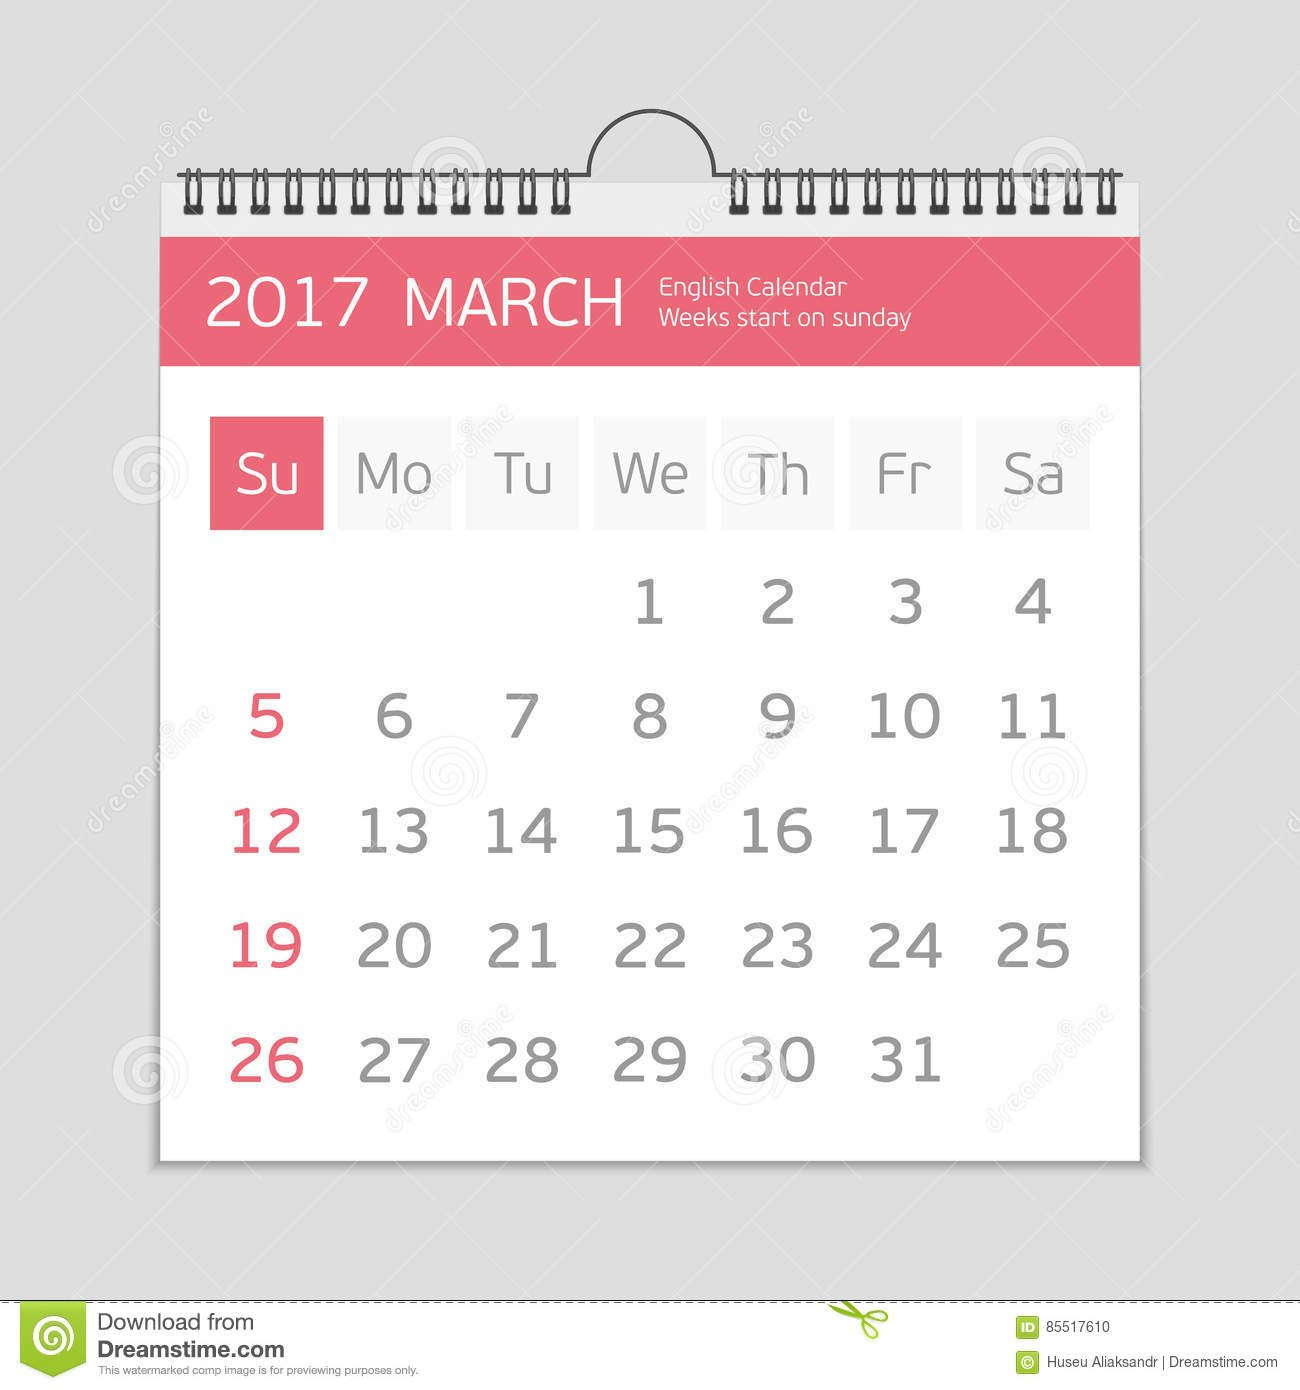 2017 March Calendar Template. Stock Vector - Illustration Of March Last 2 Weeks Calendar